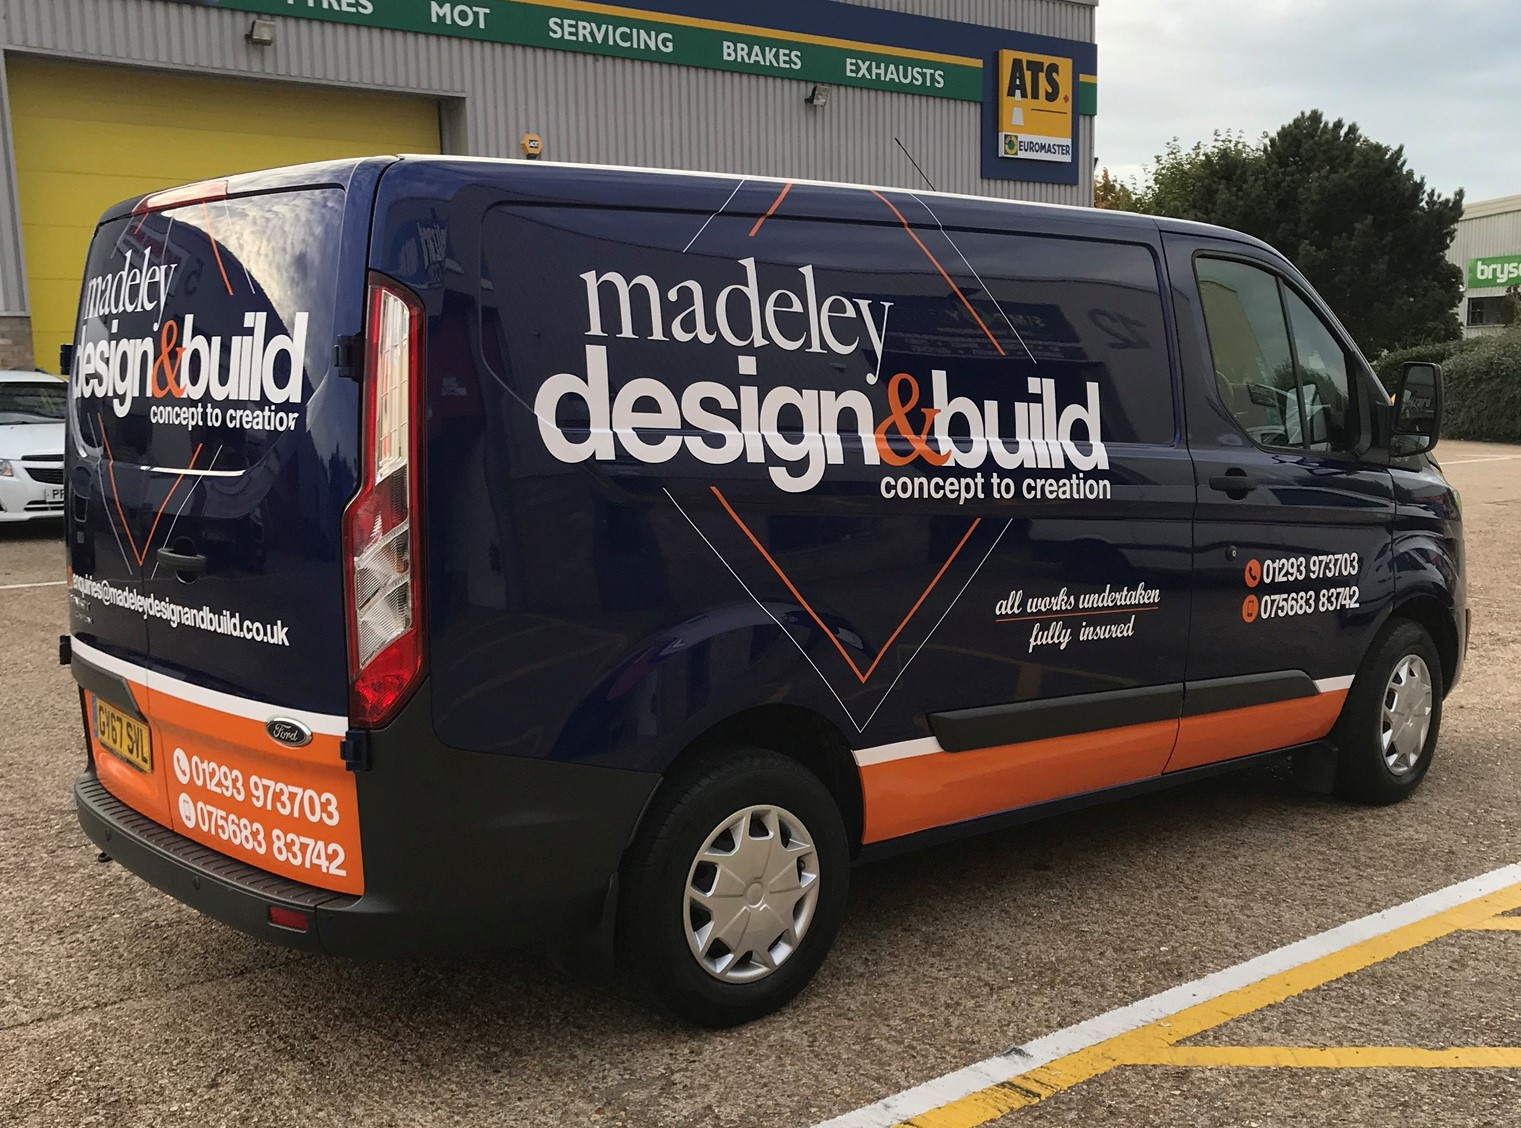 MADELEY DESIGN & BUILD